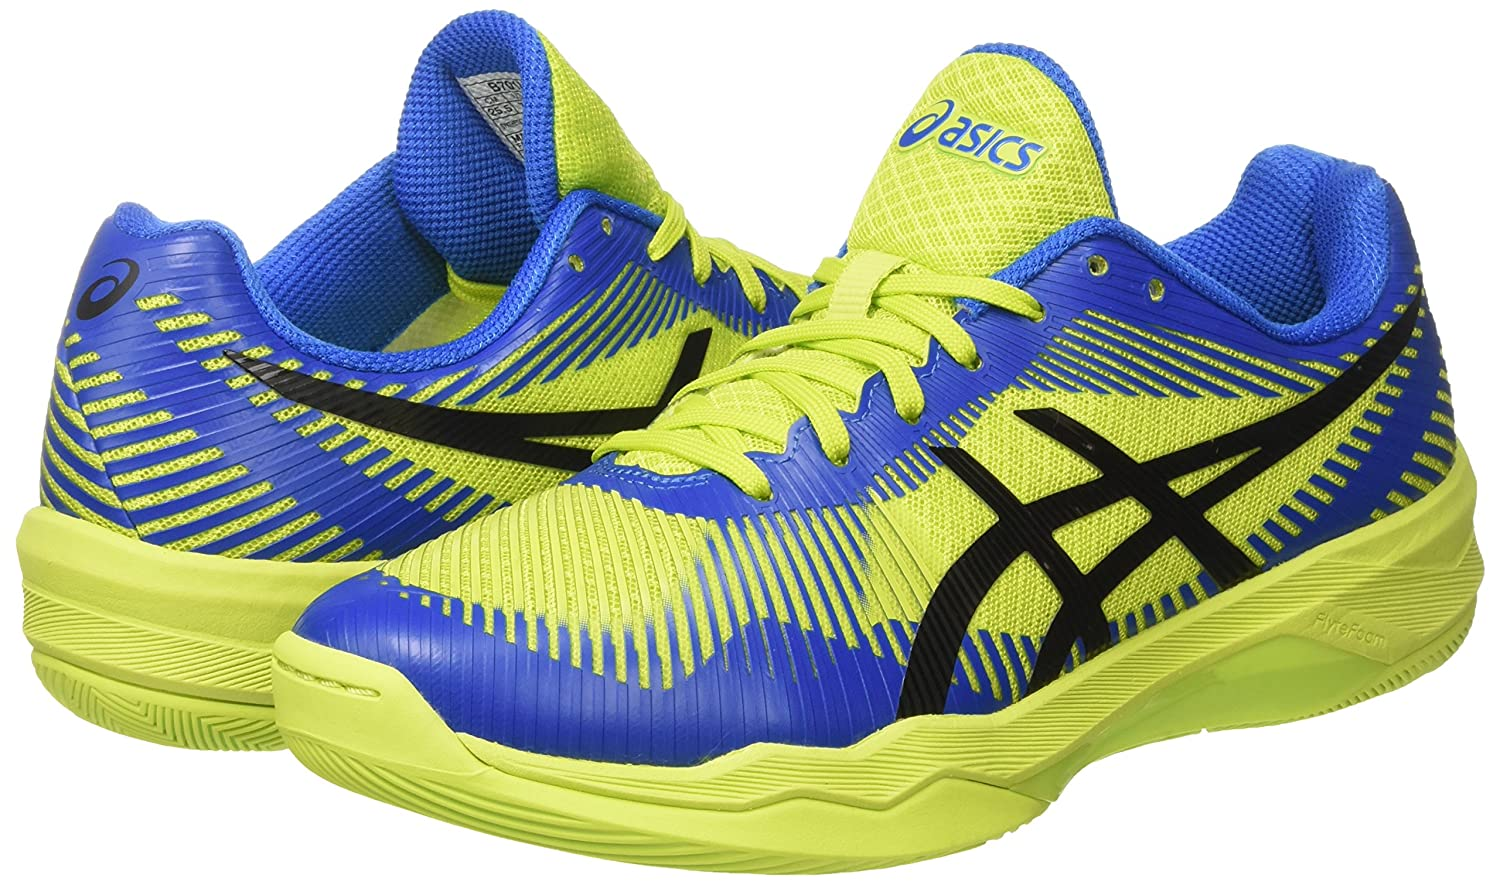 Boutique Ff Chaussures Elite Volleyball Asics De Homme Volley B701n 8naf6f